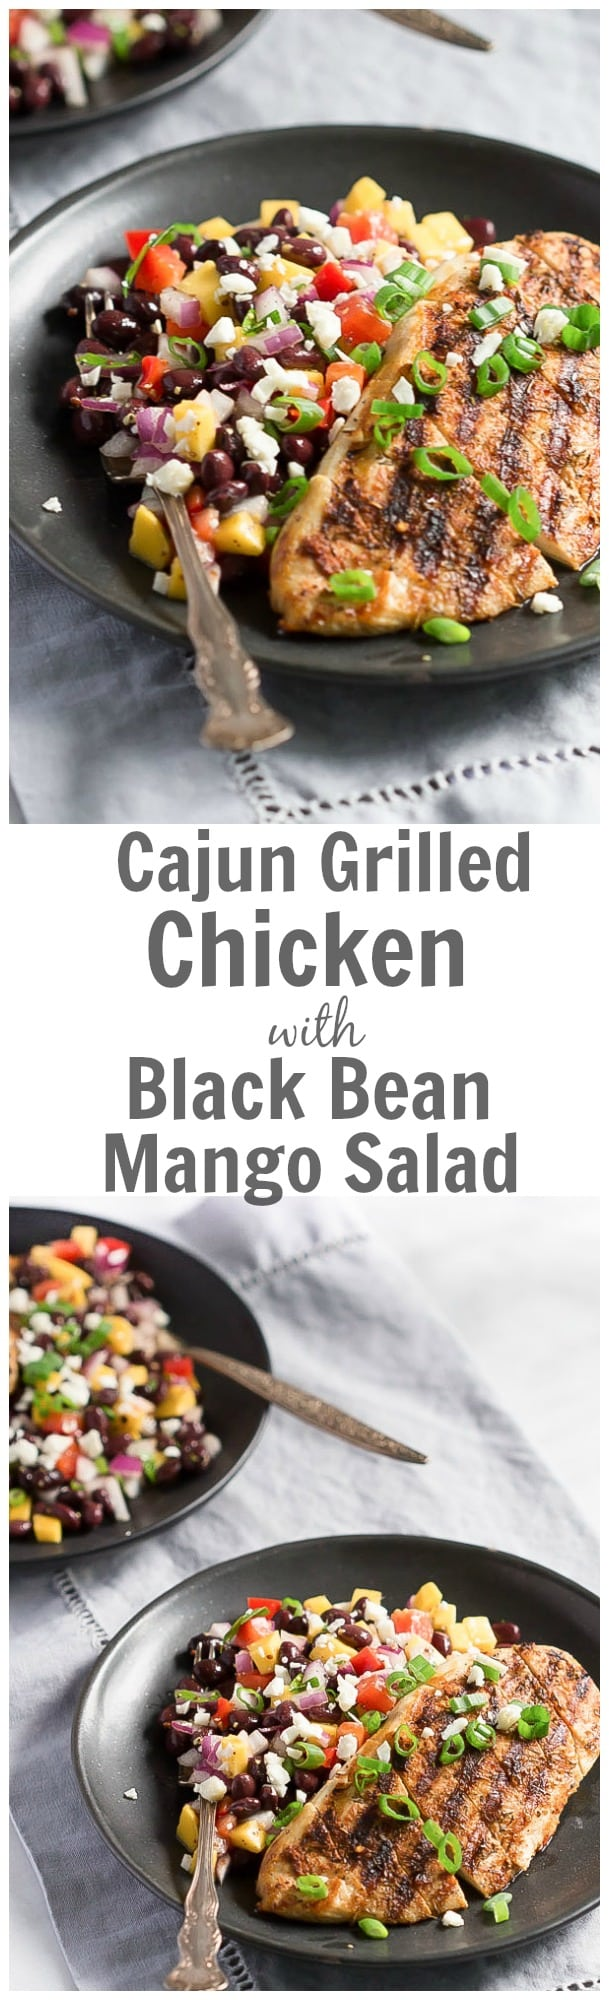 This easy Cajun Grilled Chicken with Black Bean Mango Salad recipe is made with homemade Cajun seasoning and a little olive oil. It is super easy to make, flavourful and great for your BBQ party.